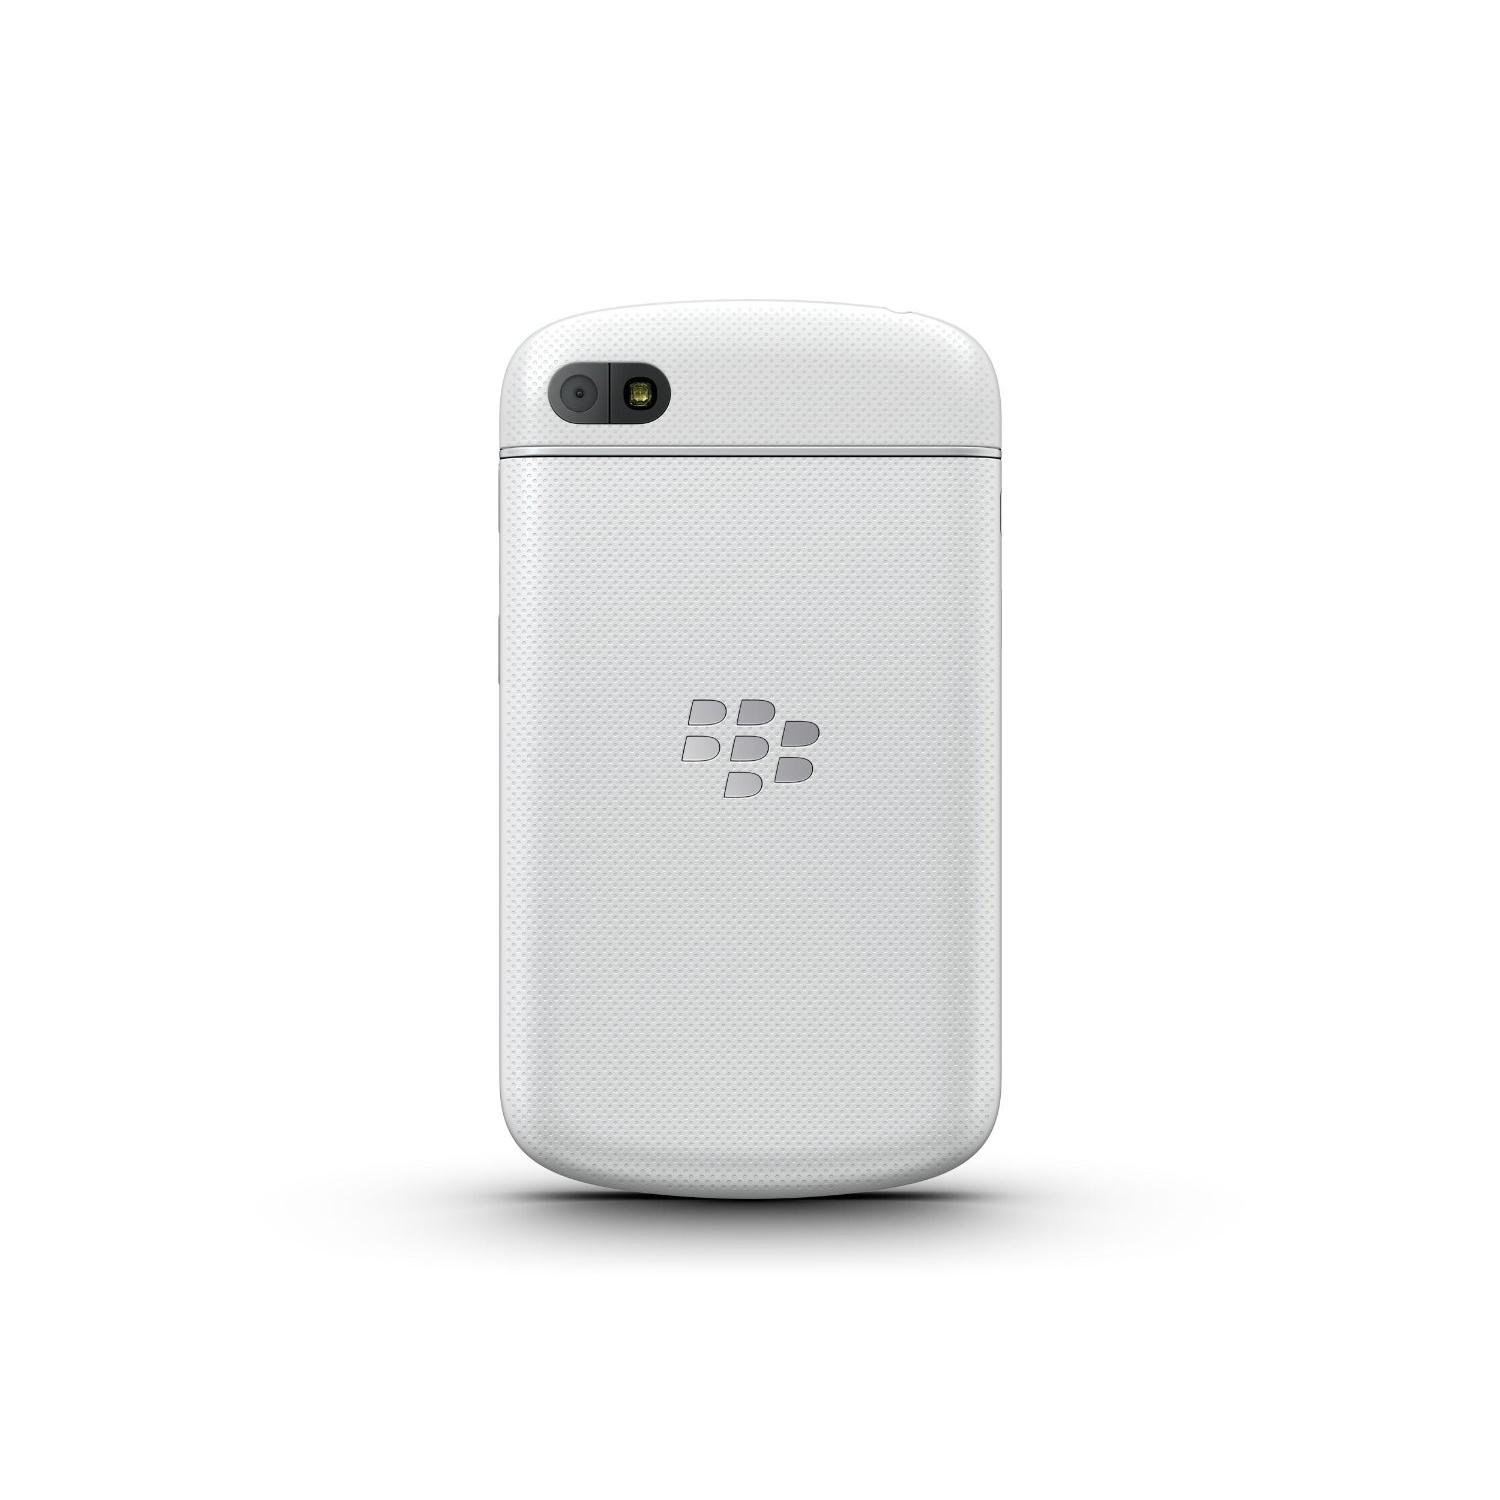 BlackBerry Q10 16 GB - Blanco - Libre